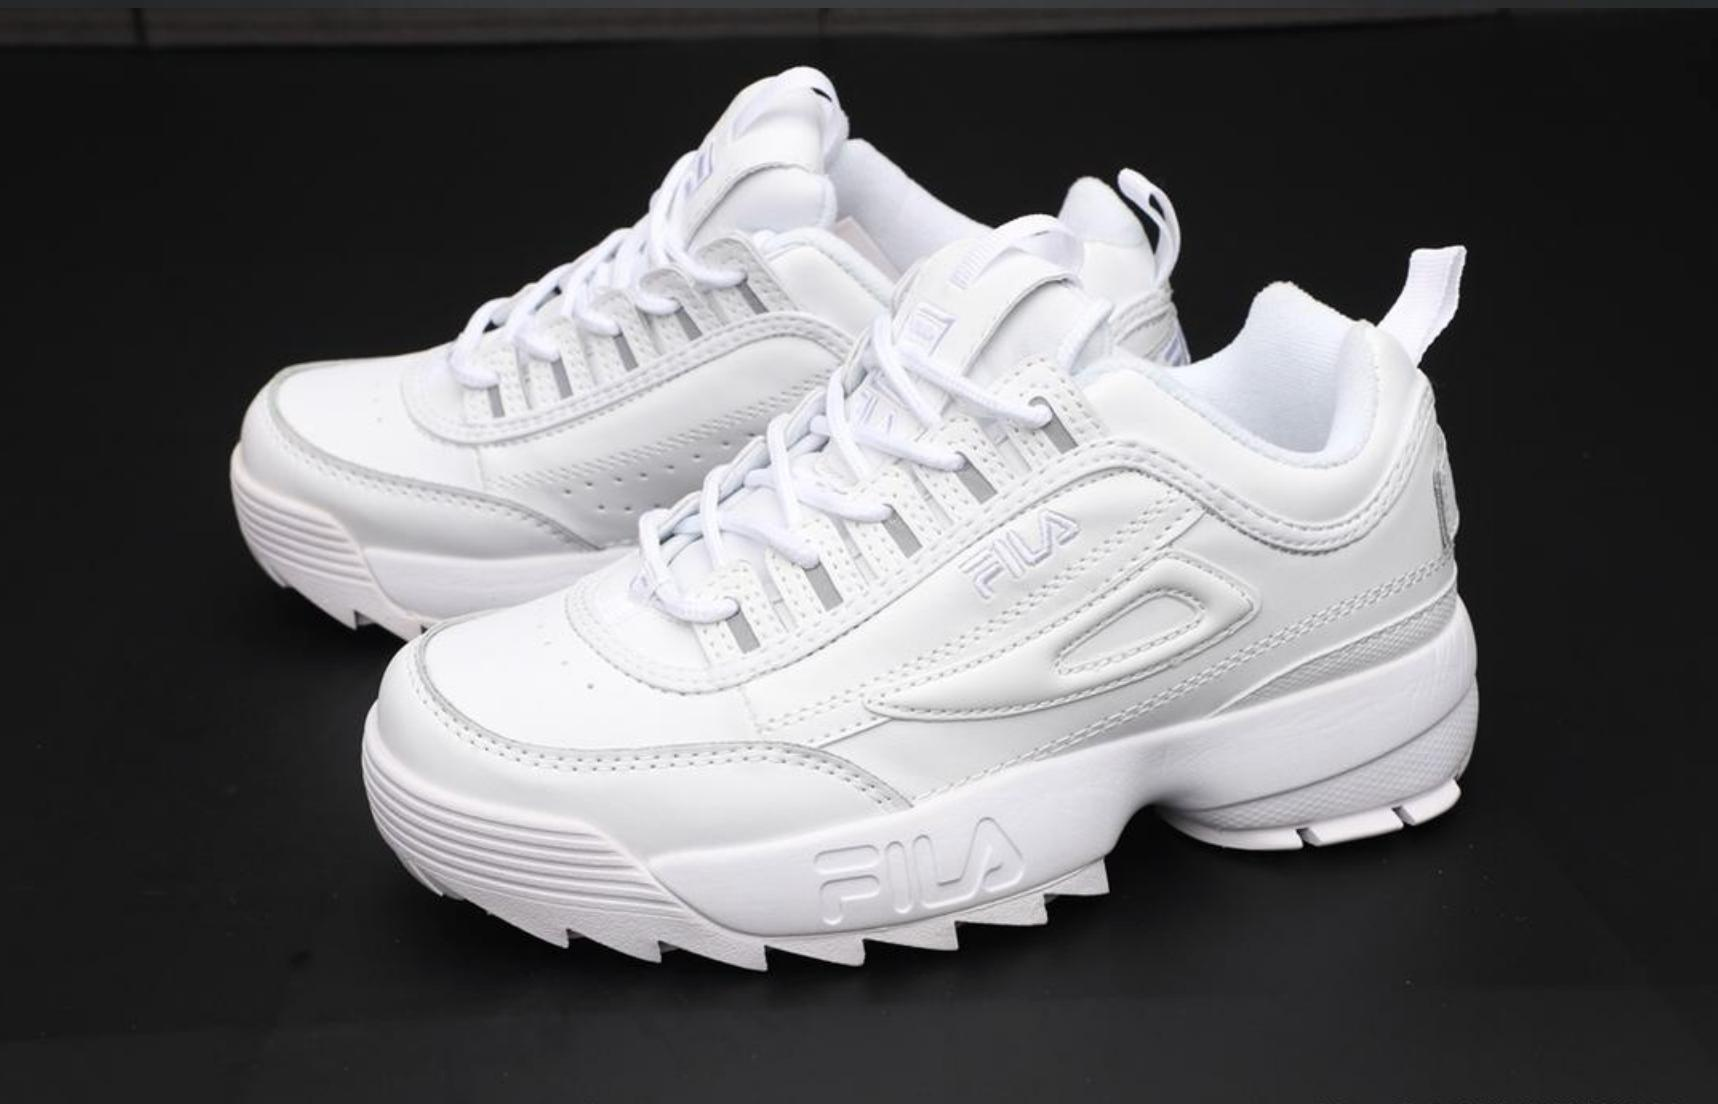 Fila Philippines  Fila price list - Sneakers   Running Shoes for ... 252c13e24